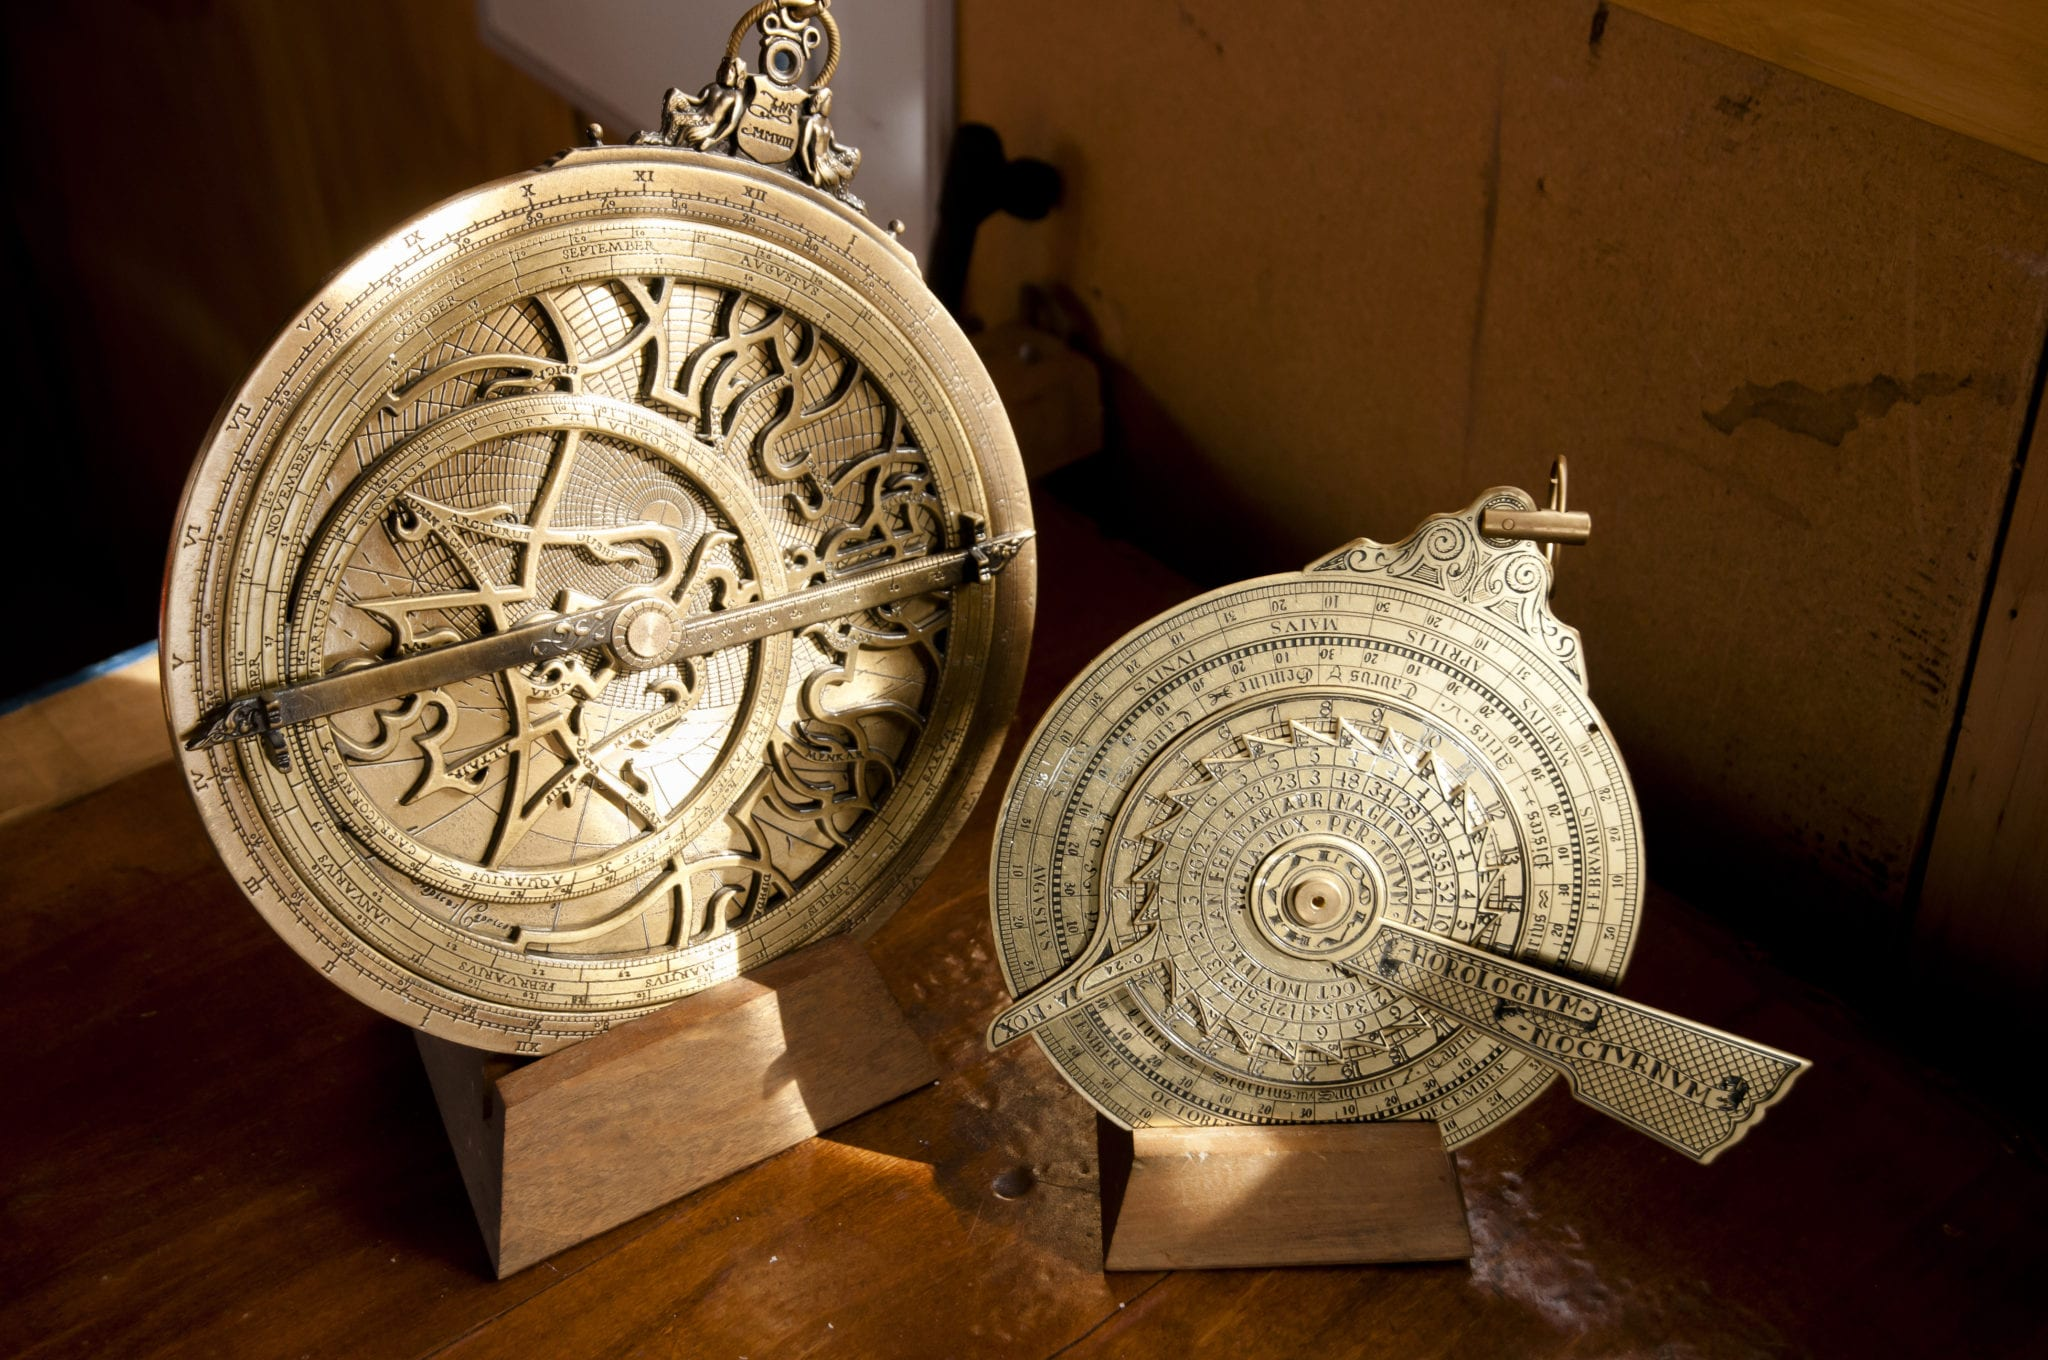 Day of Russian Naval Navigators/День штурмана ВМФ РФ: Wise Men and Directions